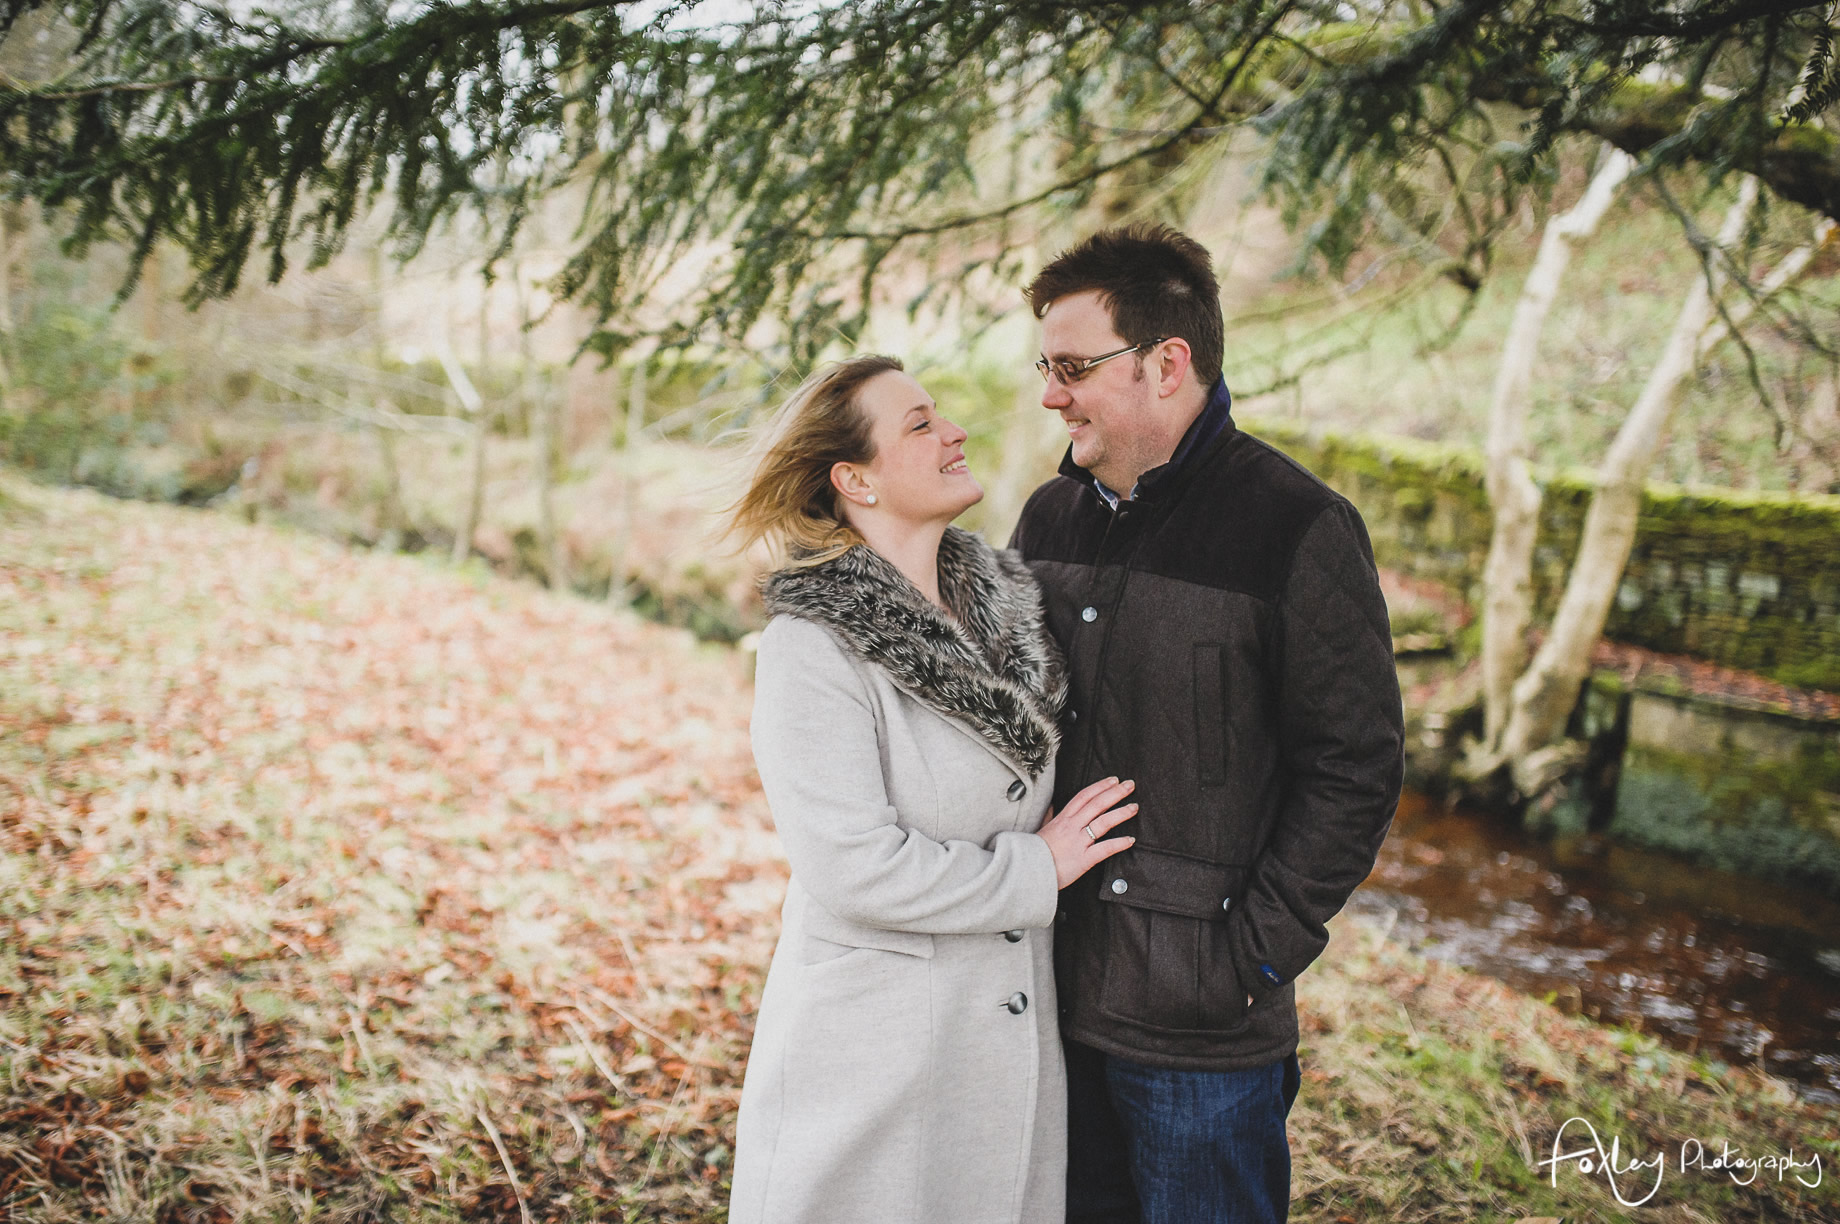 Rebecca and Paul's Pre-Wedding Shoot at Wycoller Country Park 020